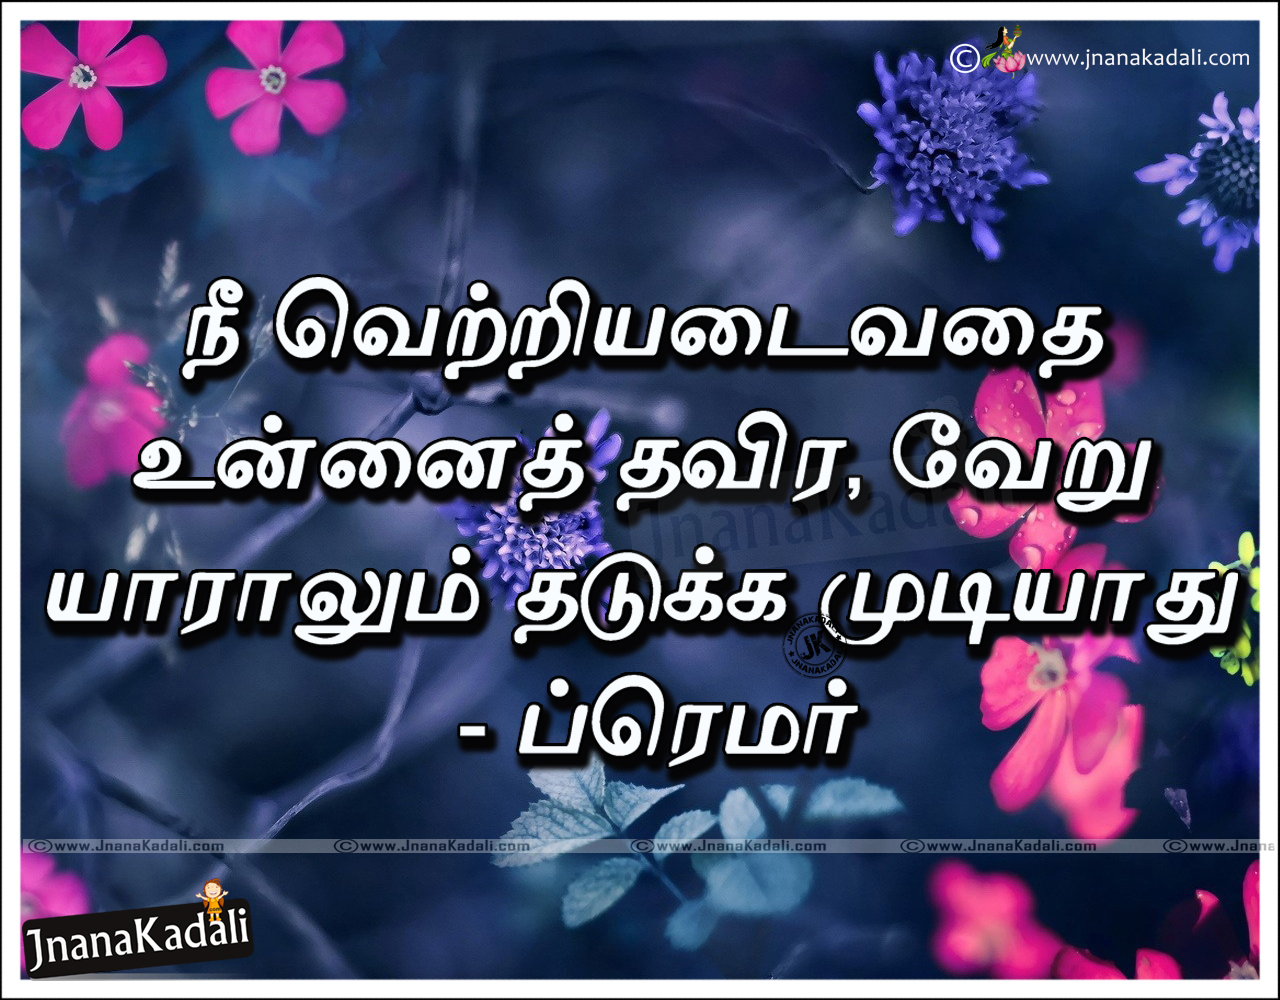 Tamil Inspiring Life Quotations And Best Motivated Wallpapers Online